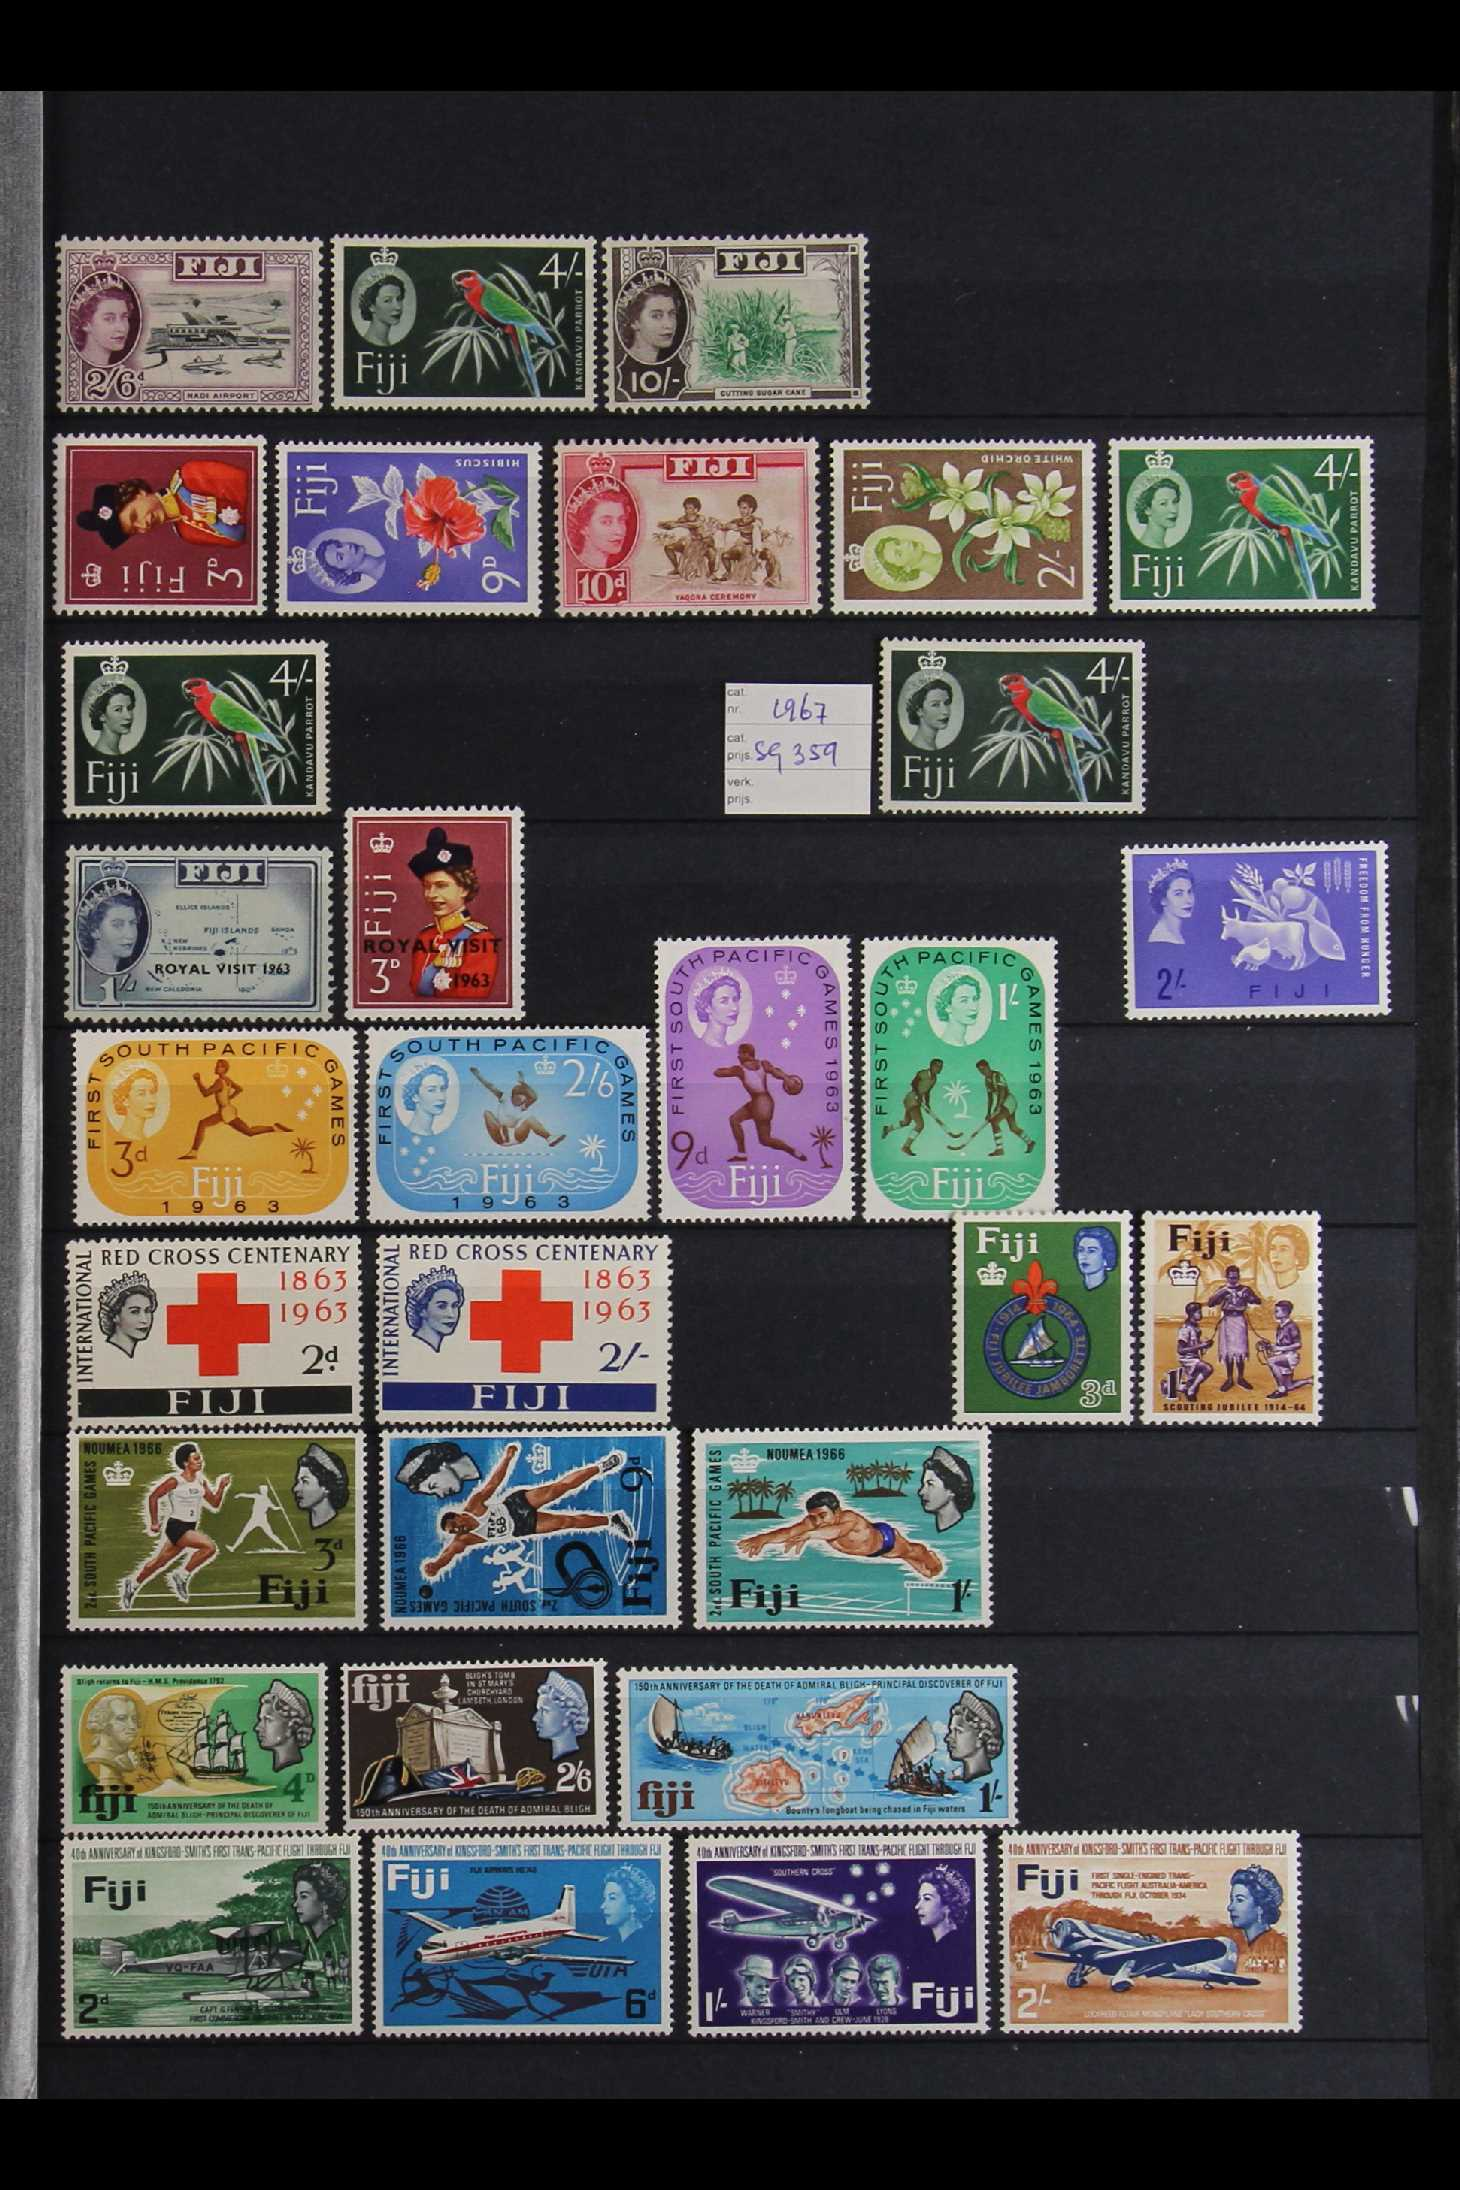 FIJI 1903-70 FINE MINT COLLECTION incl. 1903 set to 5d (excl. ½d), 1904-09 ½d & 1d, 1906-12 to 2½ - Image 6 of 9